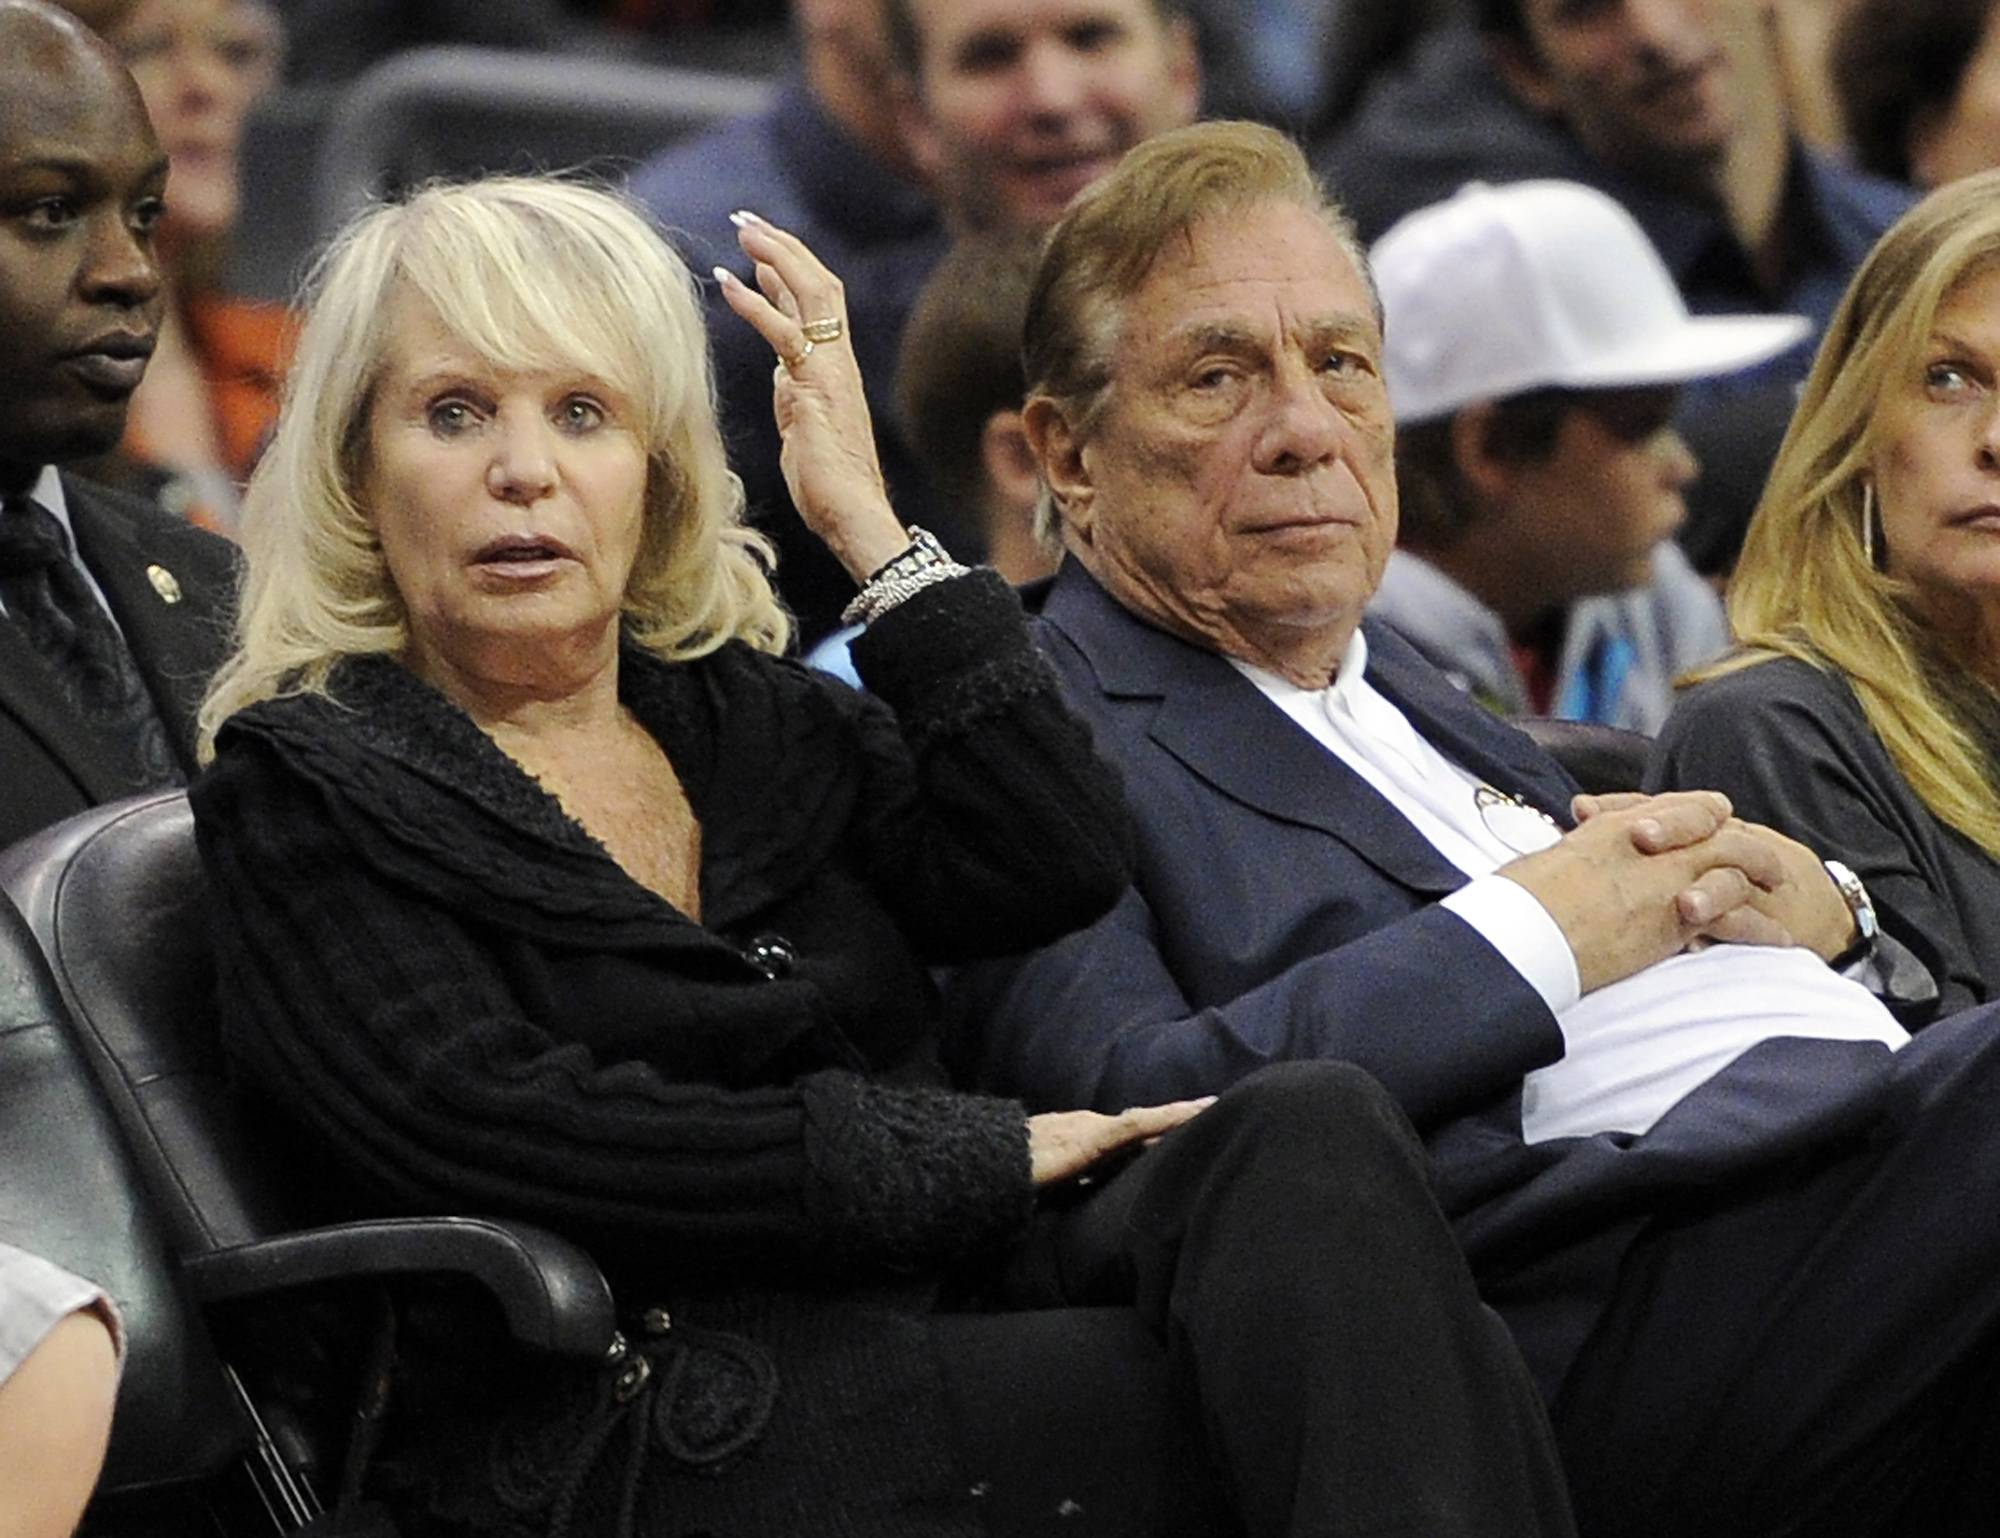 FILE - In this Nov. 12, 2010, file photo, Shelly Sterling sits with her husband, Donald Sterling, during the Los Angeles Clippers' NBA basketball game against the Detroit Pistons in Los Angeles. Only final arguments and a ruling remain in the trial to determine whether Sterling's estranged wife can sell the Clippers to former Microsoft CEO Steve Ballmer for $2 billion. Lawyers for Sterling plan to argue Monday, July 28, 2014, that Shelly Sterling had no right to make the deal with Ballmer, even though Donald Sterling had given her written authority to pursue a sale.